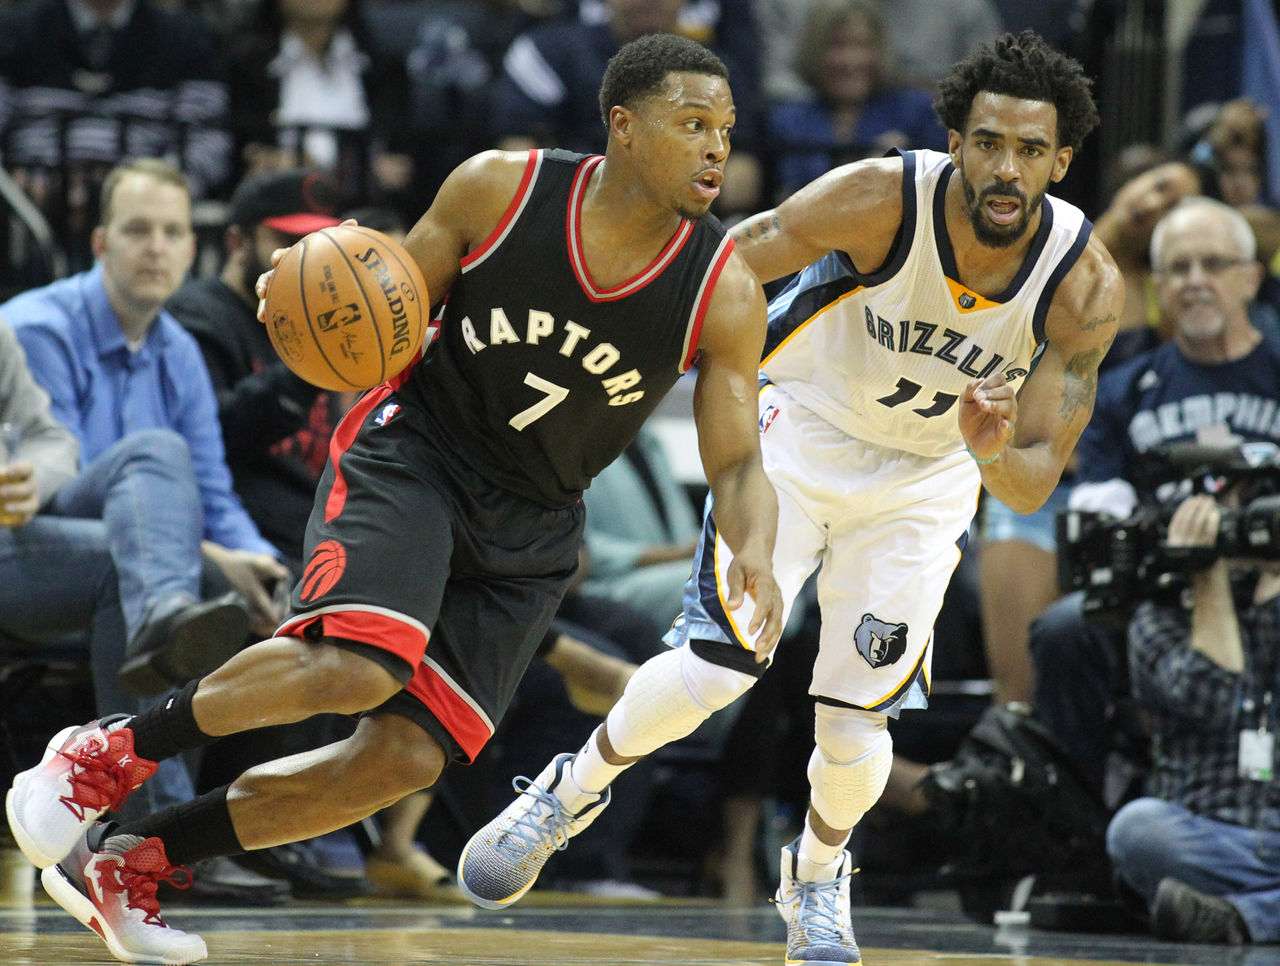 Cropped 2017 01 26t043450z 1901719561 nocid rtrmadp 3 nba toronto raptors at memphis grizzlies